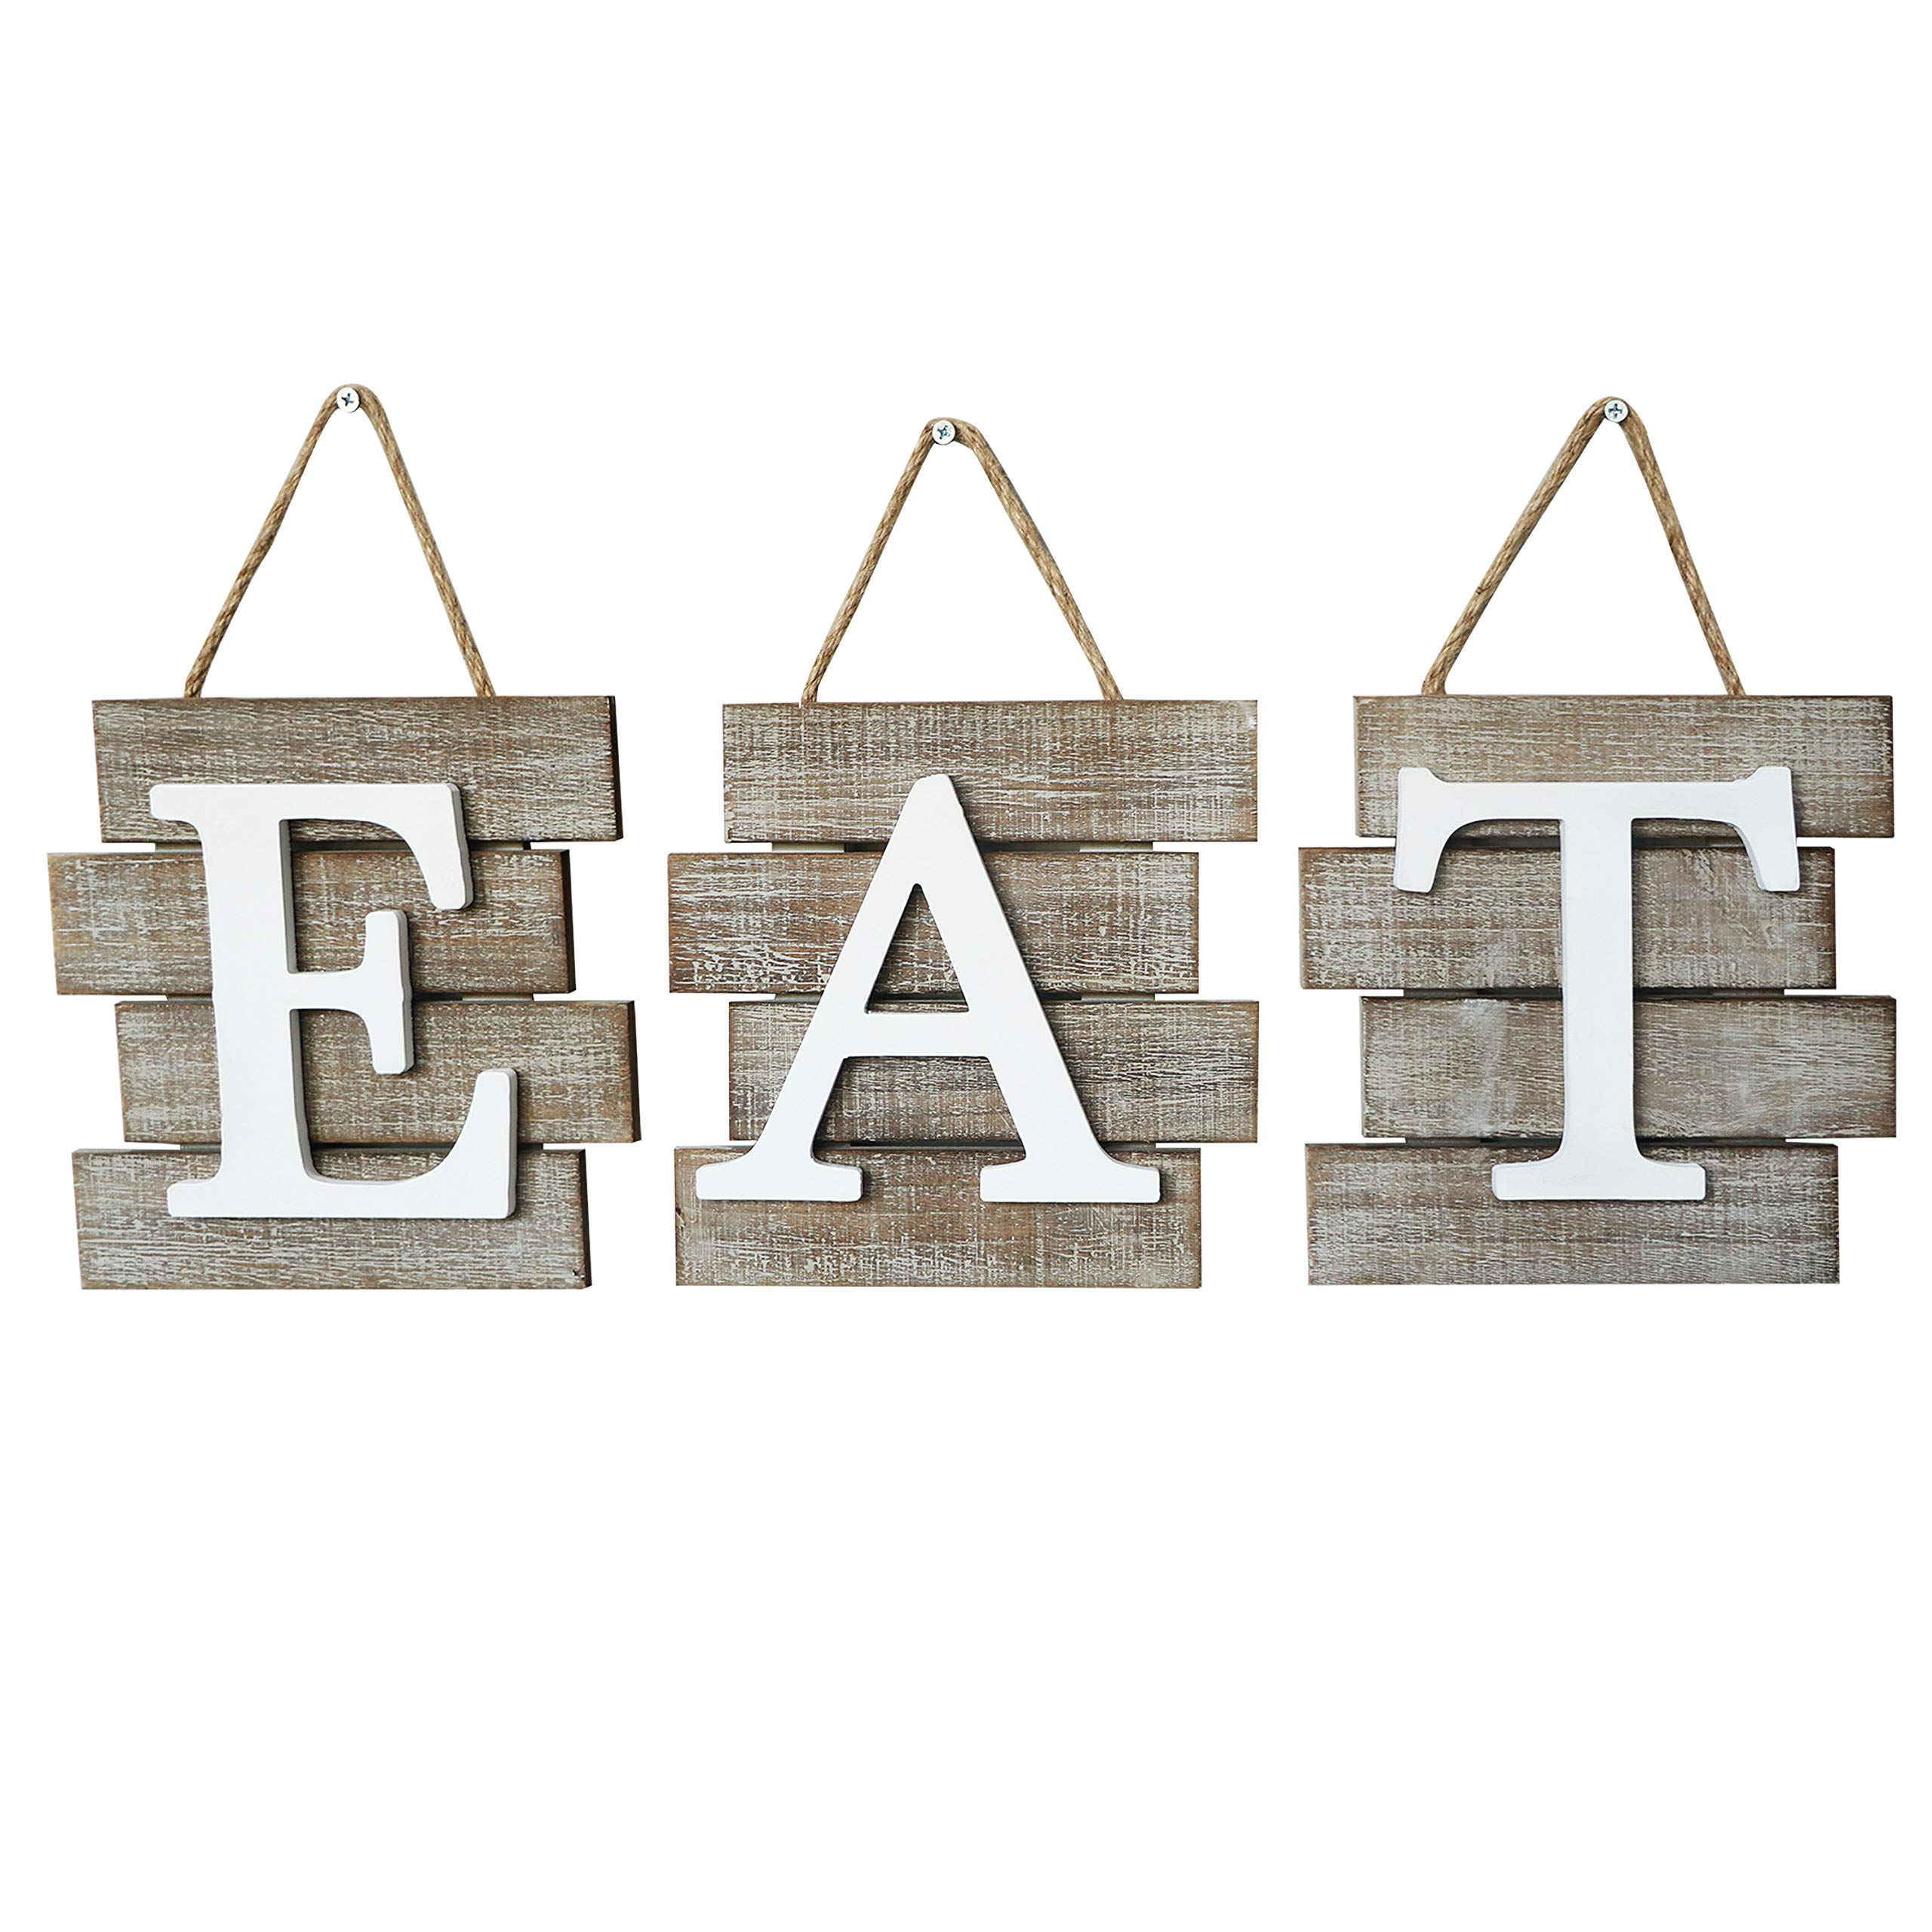 Barnyard Designs Eat Sign Wall Decor, Rustic Farmhouse Decoration for Kitchen and Home, Decorative Hanging Wooden Letters, Country Wall Art, Distressed Brown and White, 24″ x 8""